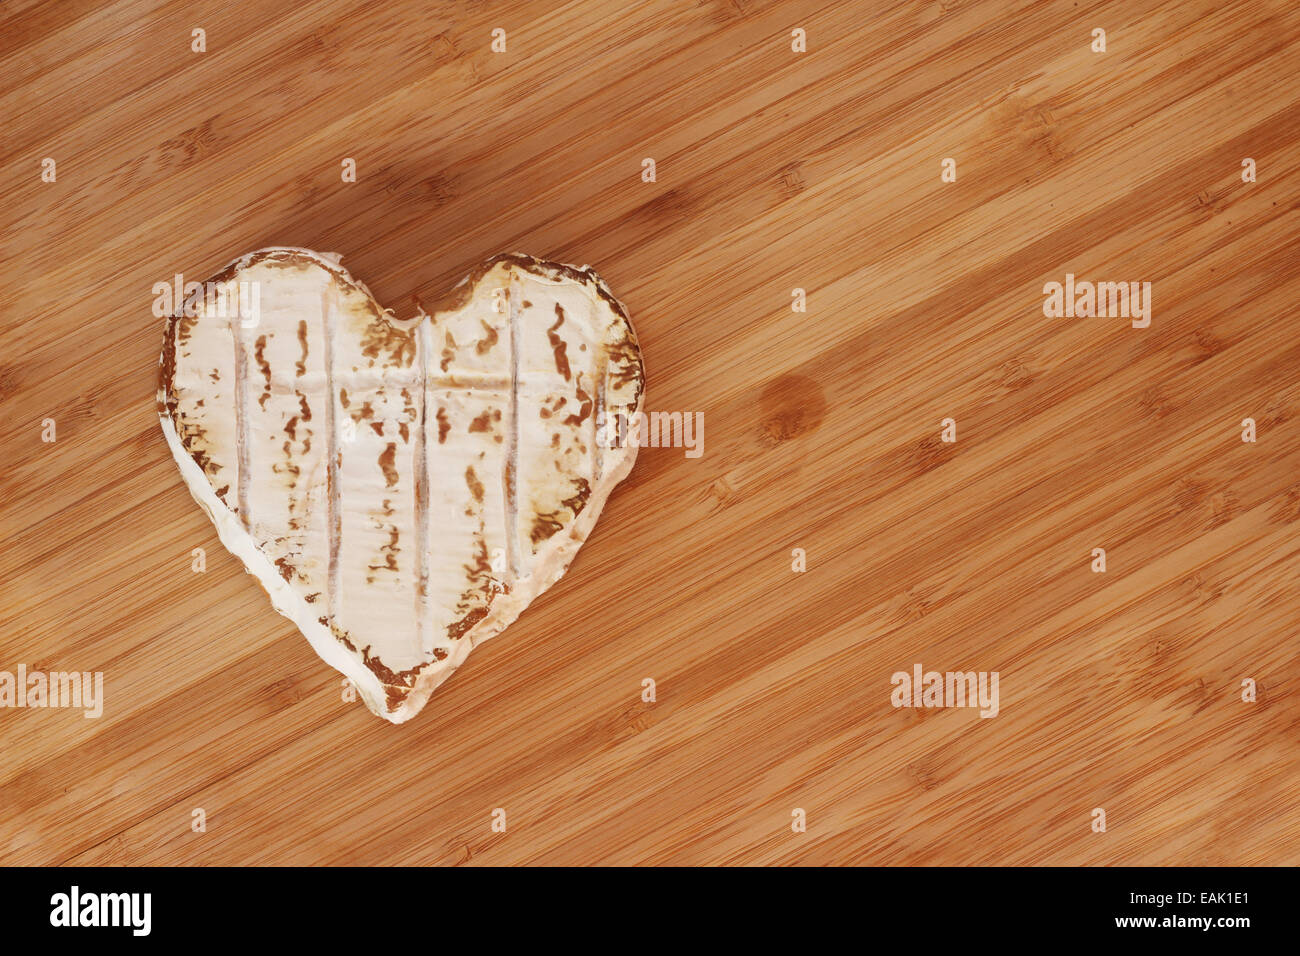 Neufchatel cheese shaped like heart on wooden cutting board - Stock Image